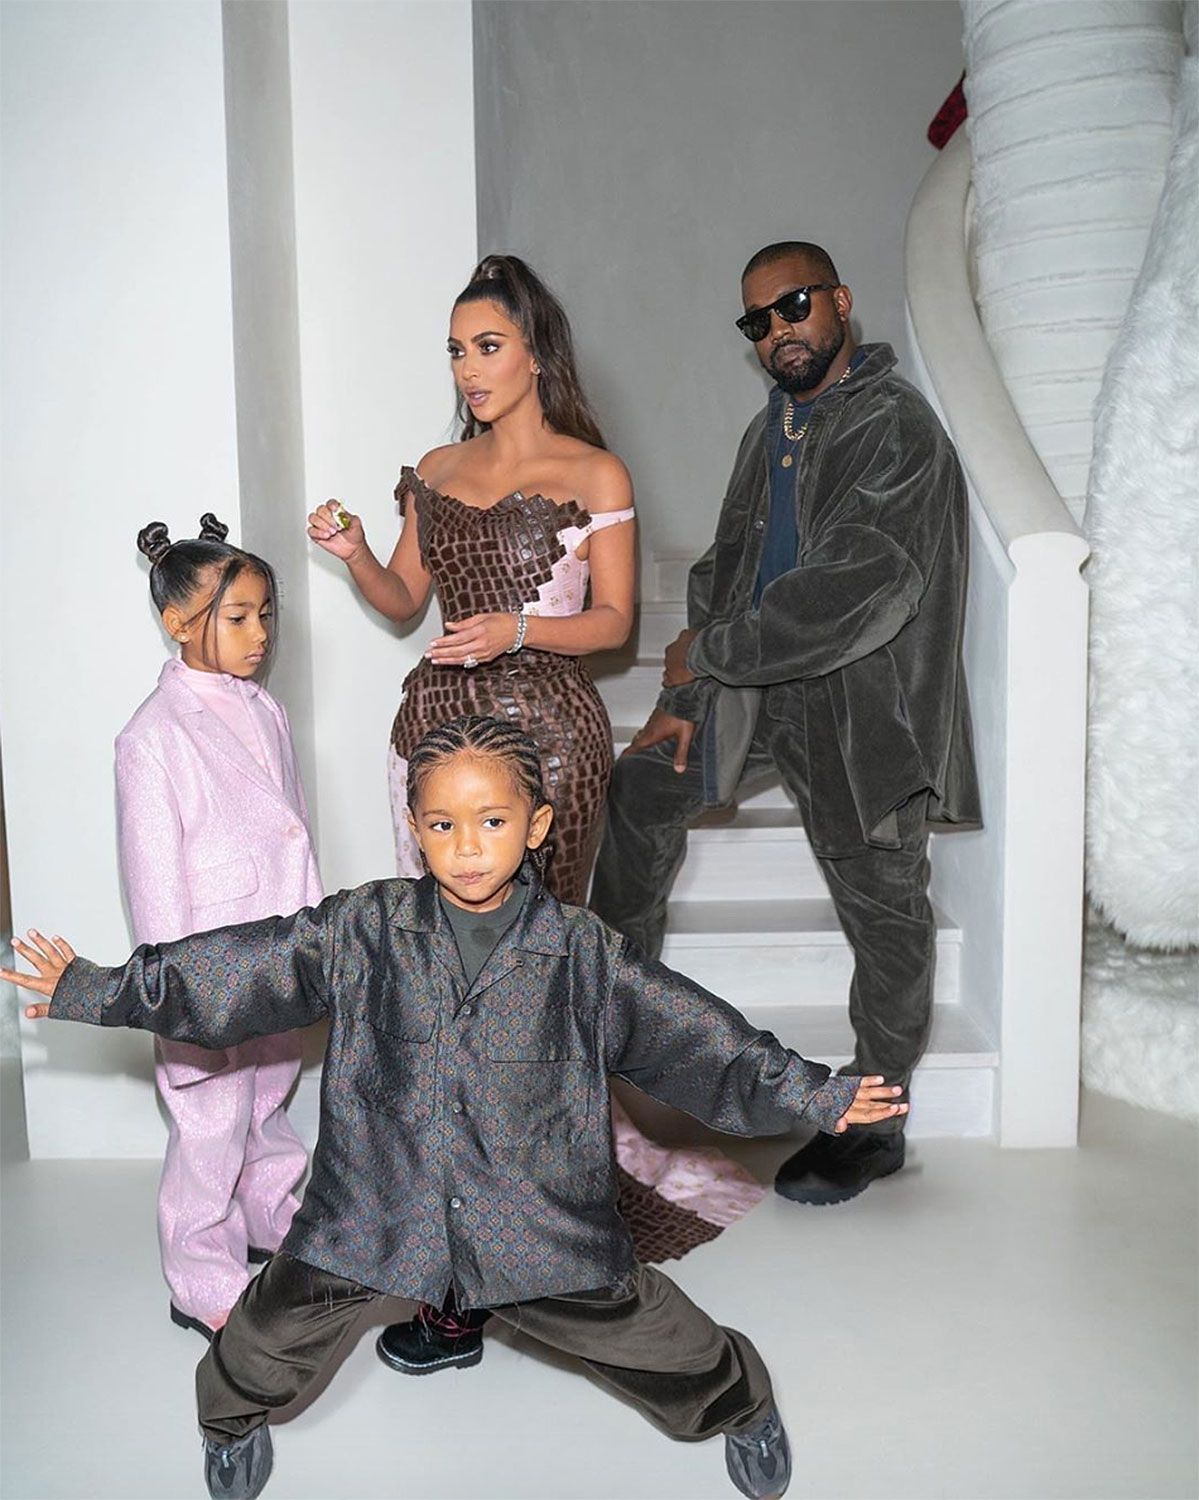 Kim Kardashian And Kanye West Share The West Family Christmas Card 2019 With All Four Kids In 2020 Kim Kardashian And Kanye Kardashian Kids Kim Kardashian Family